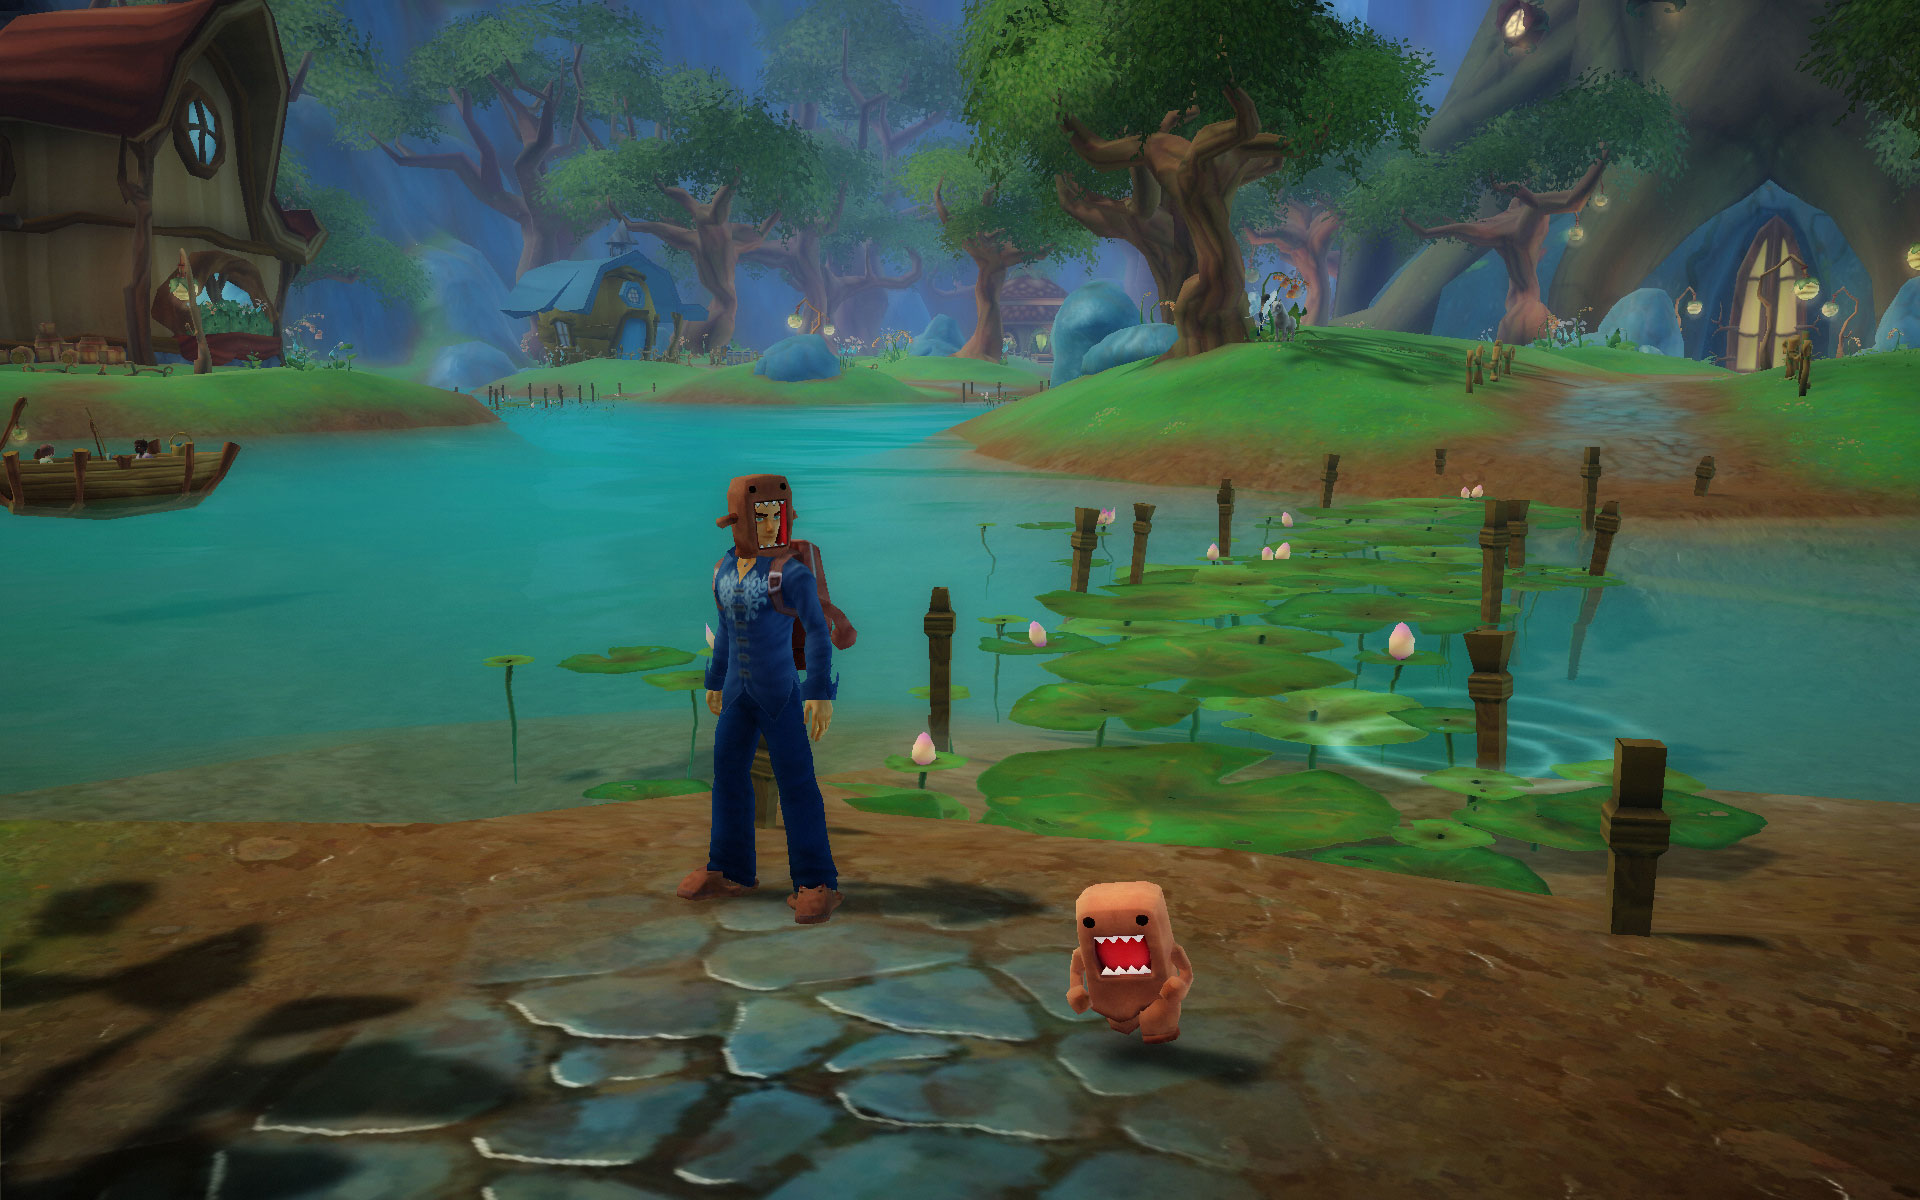 Free realms screenshots video game news videos and file downloads